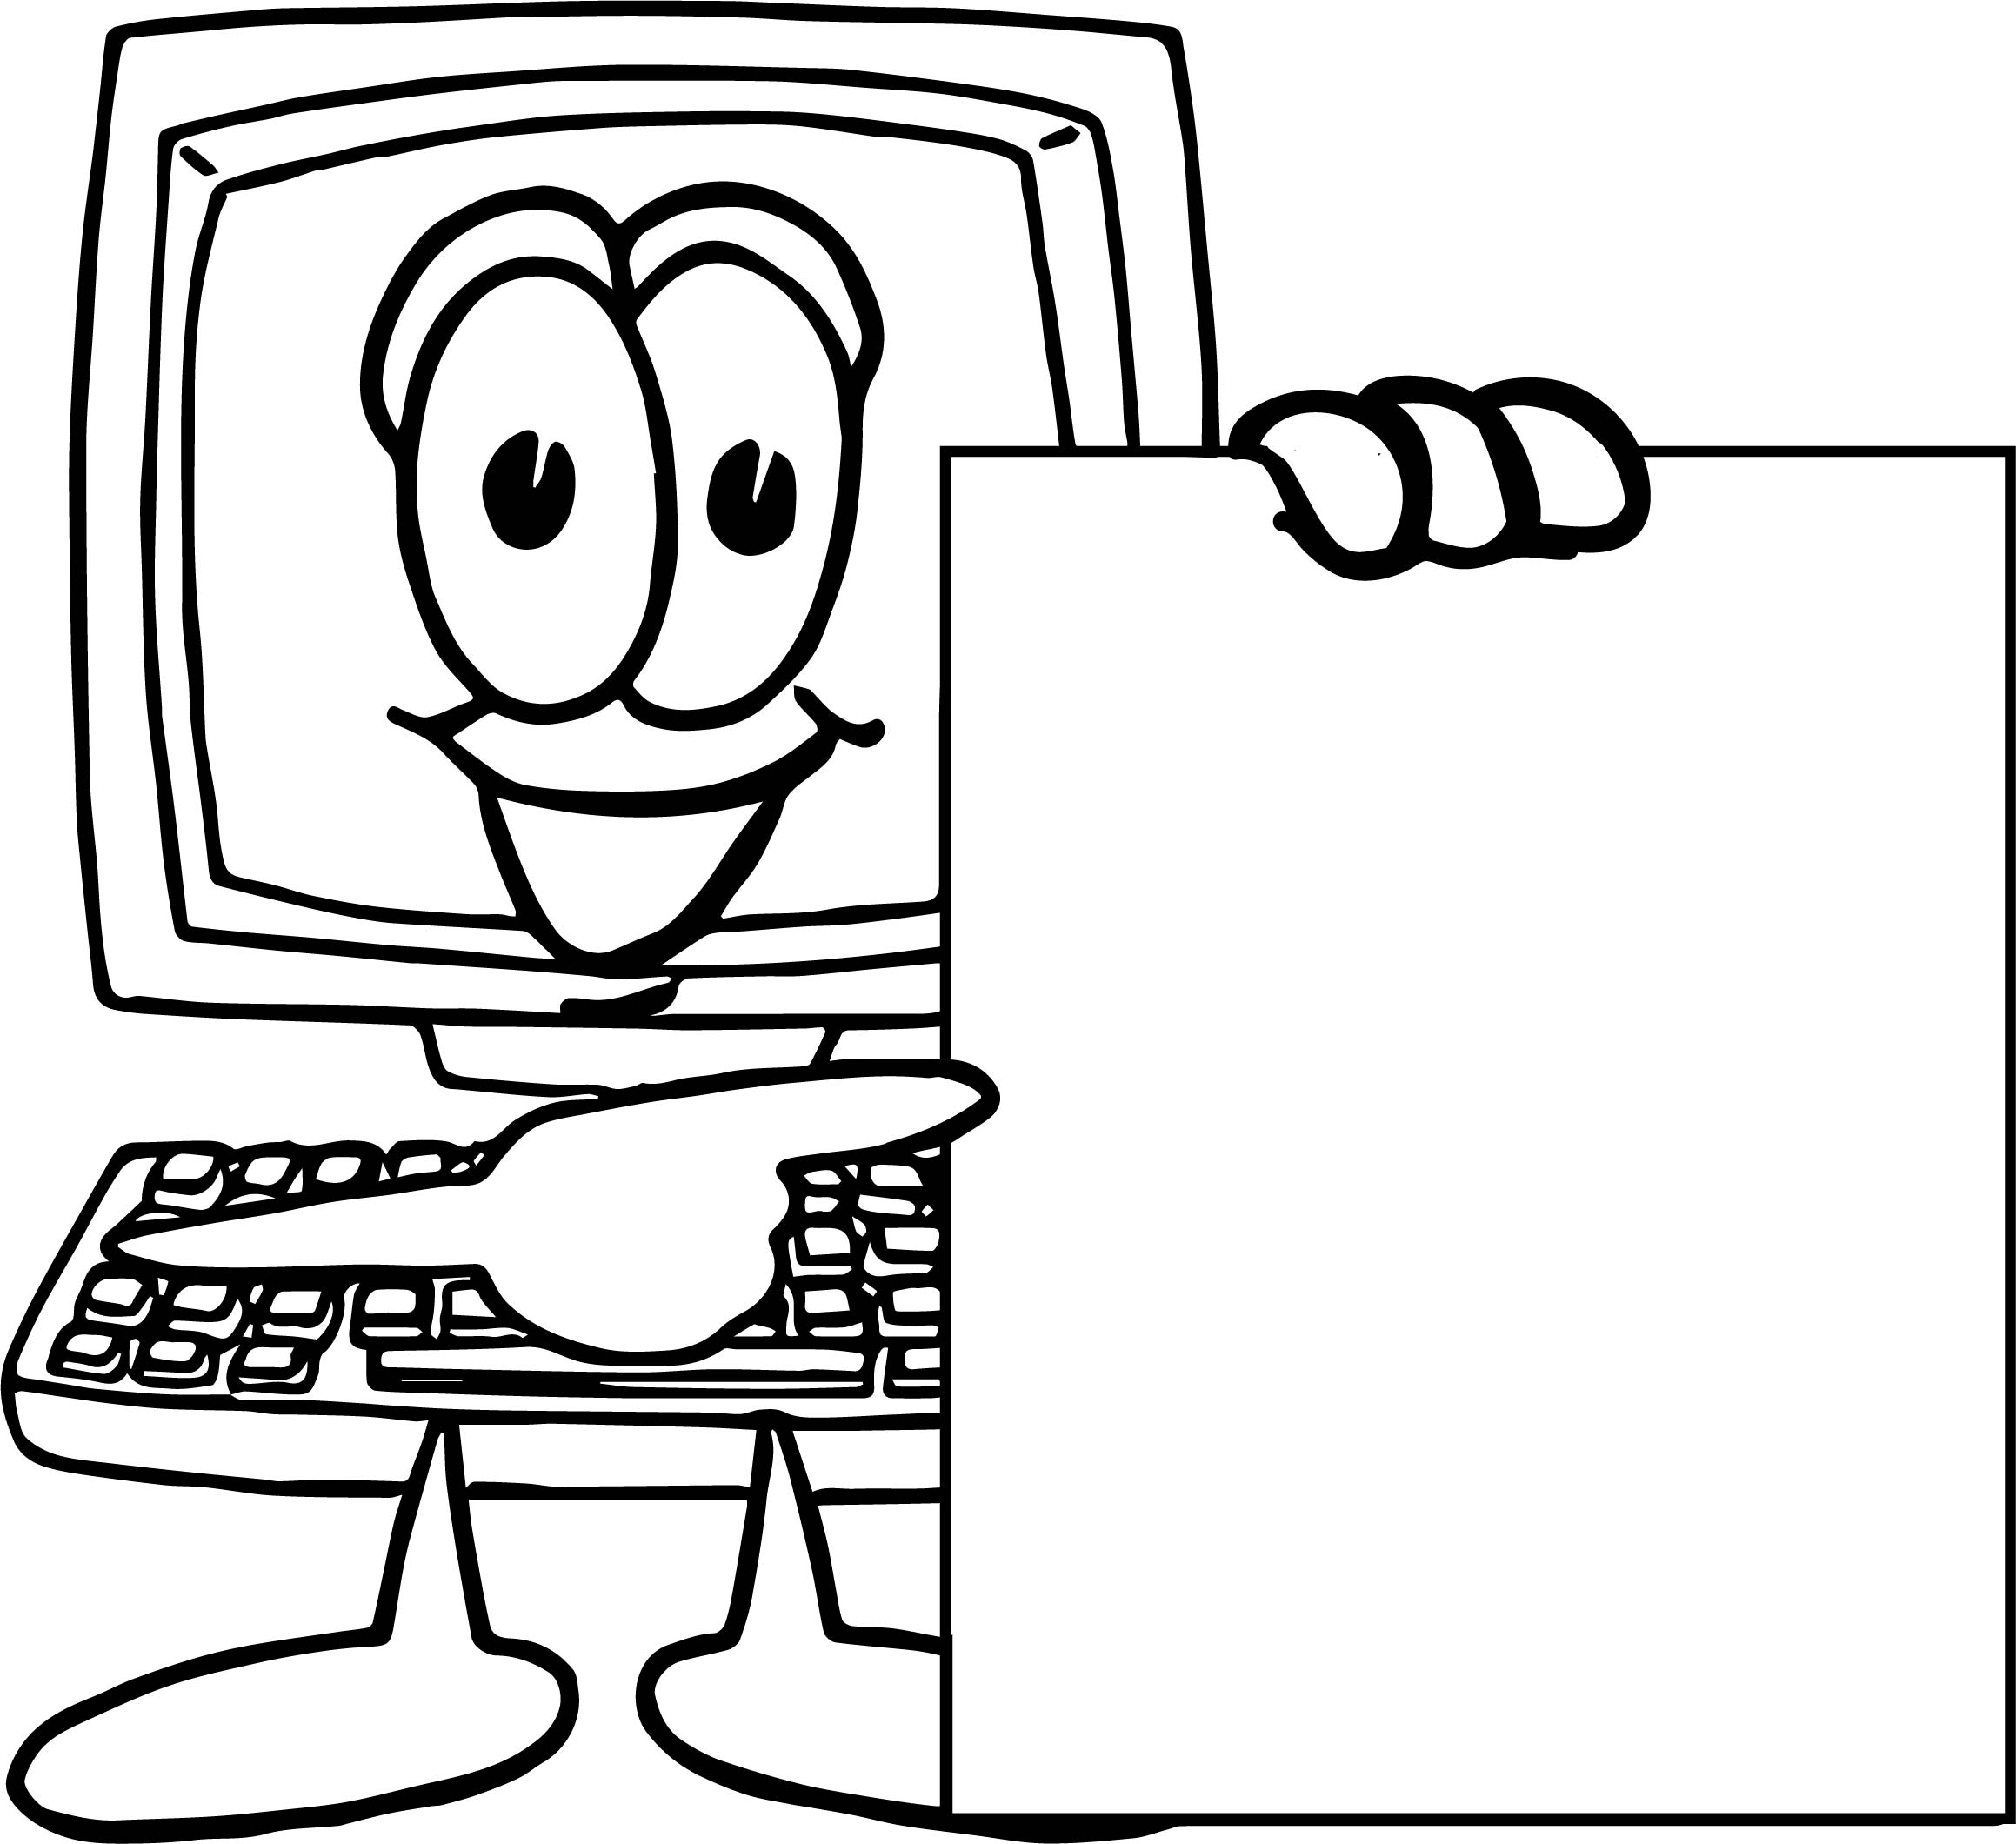 Computer Parts Coloring Pages At Getdrawings